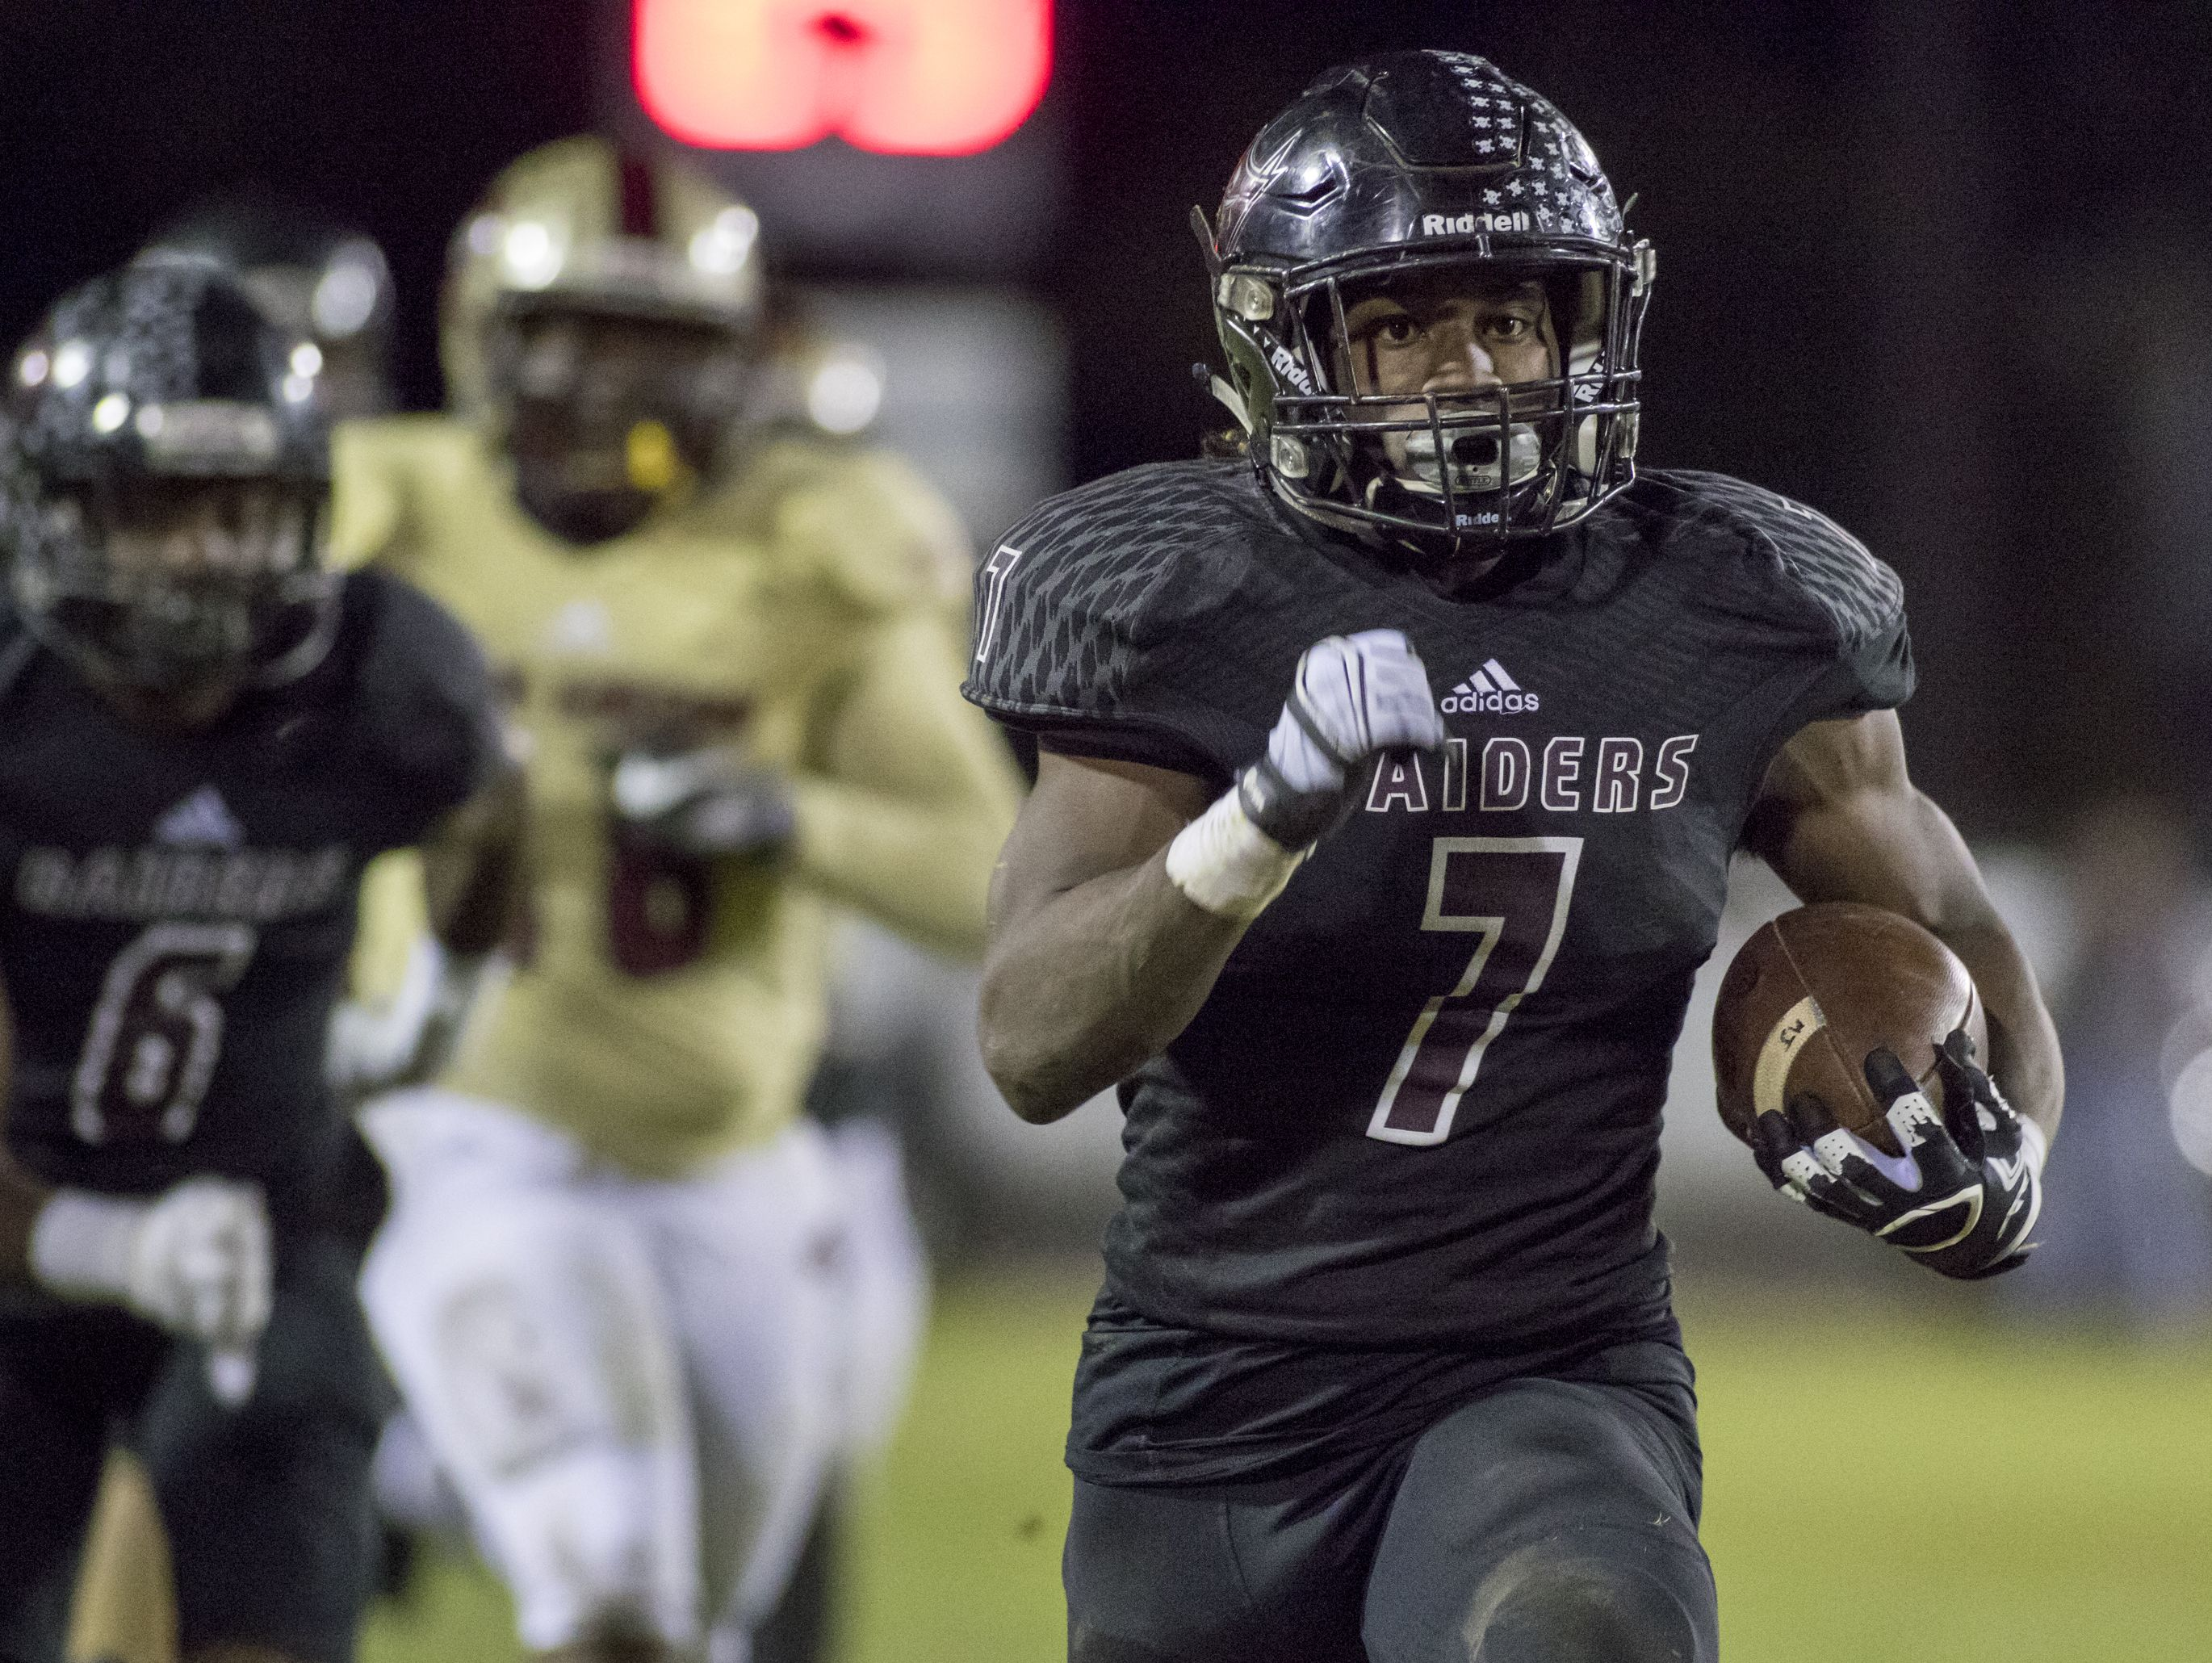 Michael Carter (7) runs for a game tying touchdown during the Navarre vs. Lake Gibson high school state semifinals football game at Navarre High School on Dec. 2.